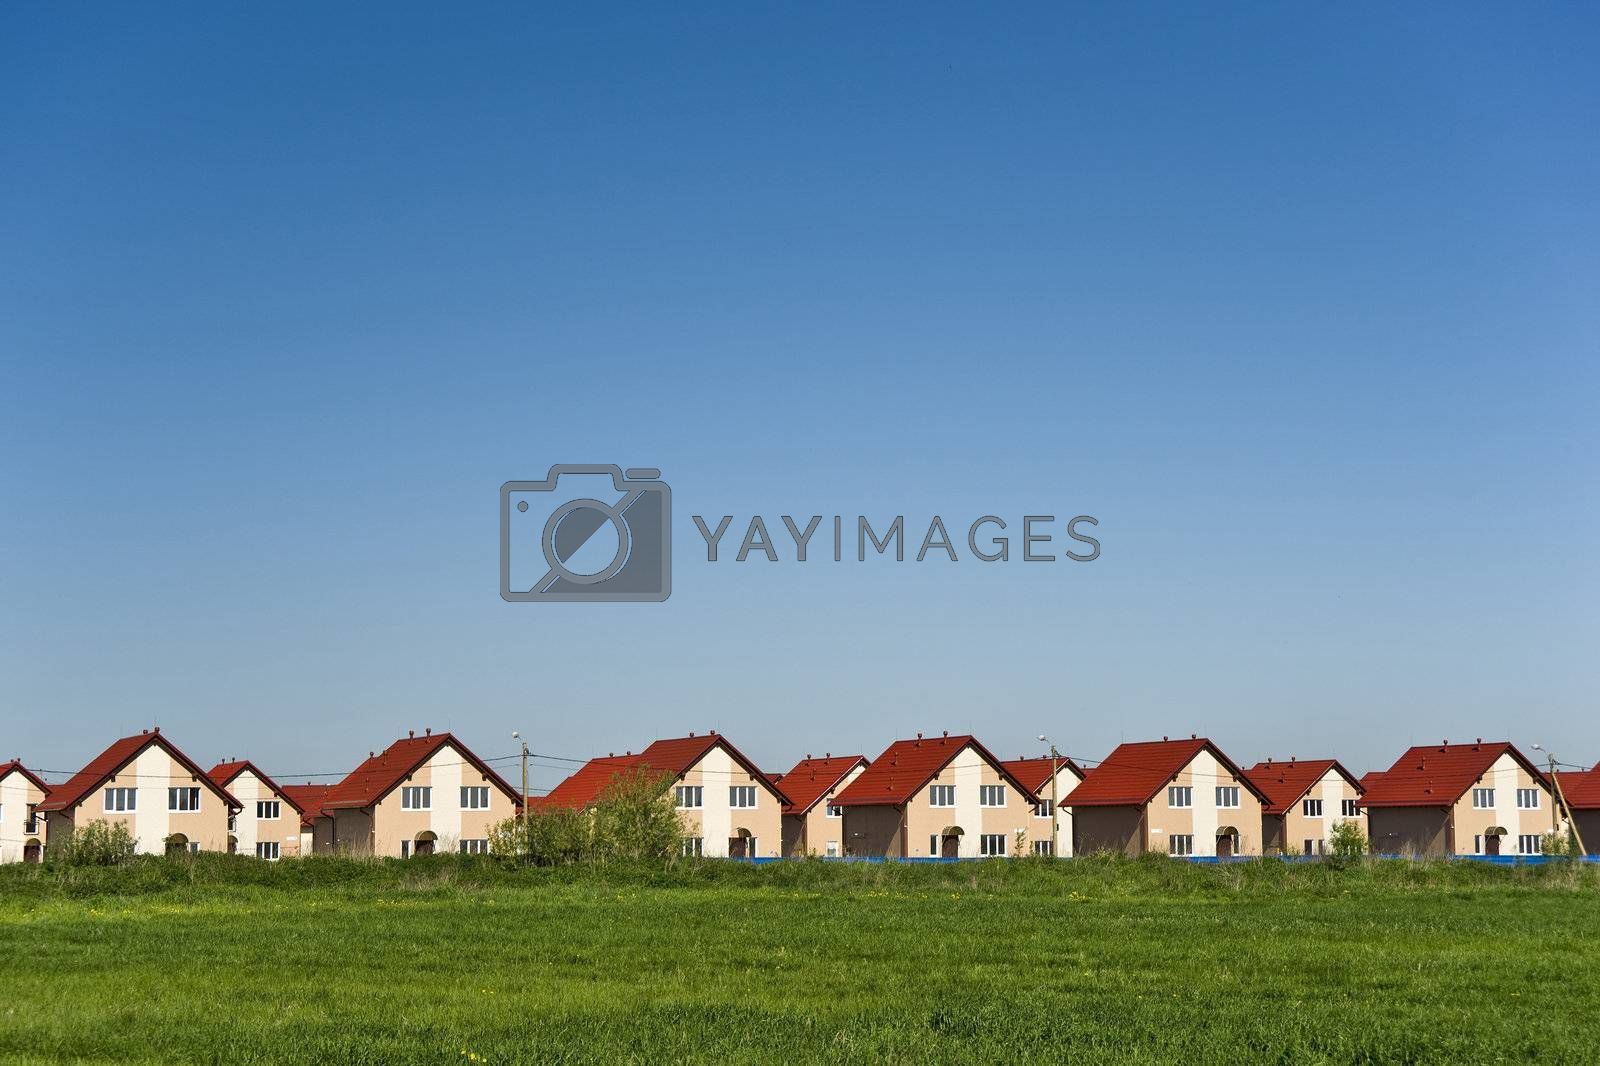 Royalty free image of New cottages and blue sky background by mulden